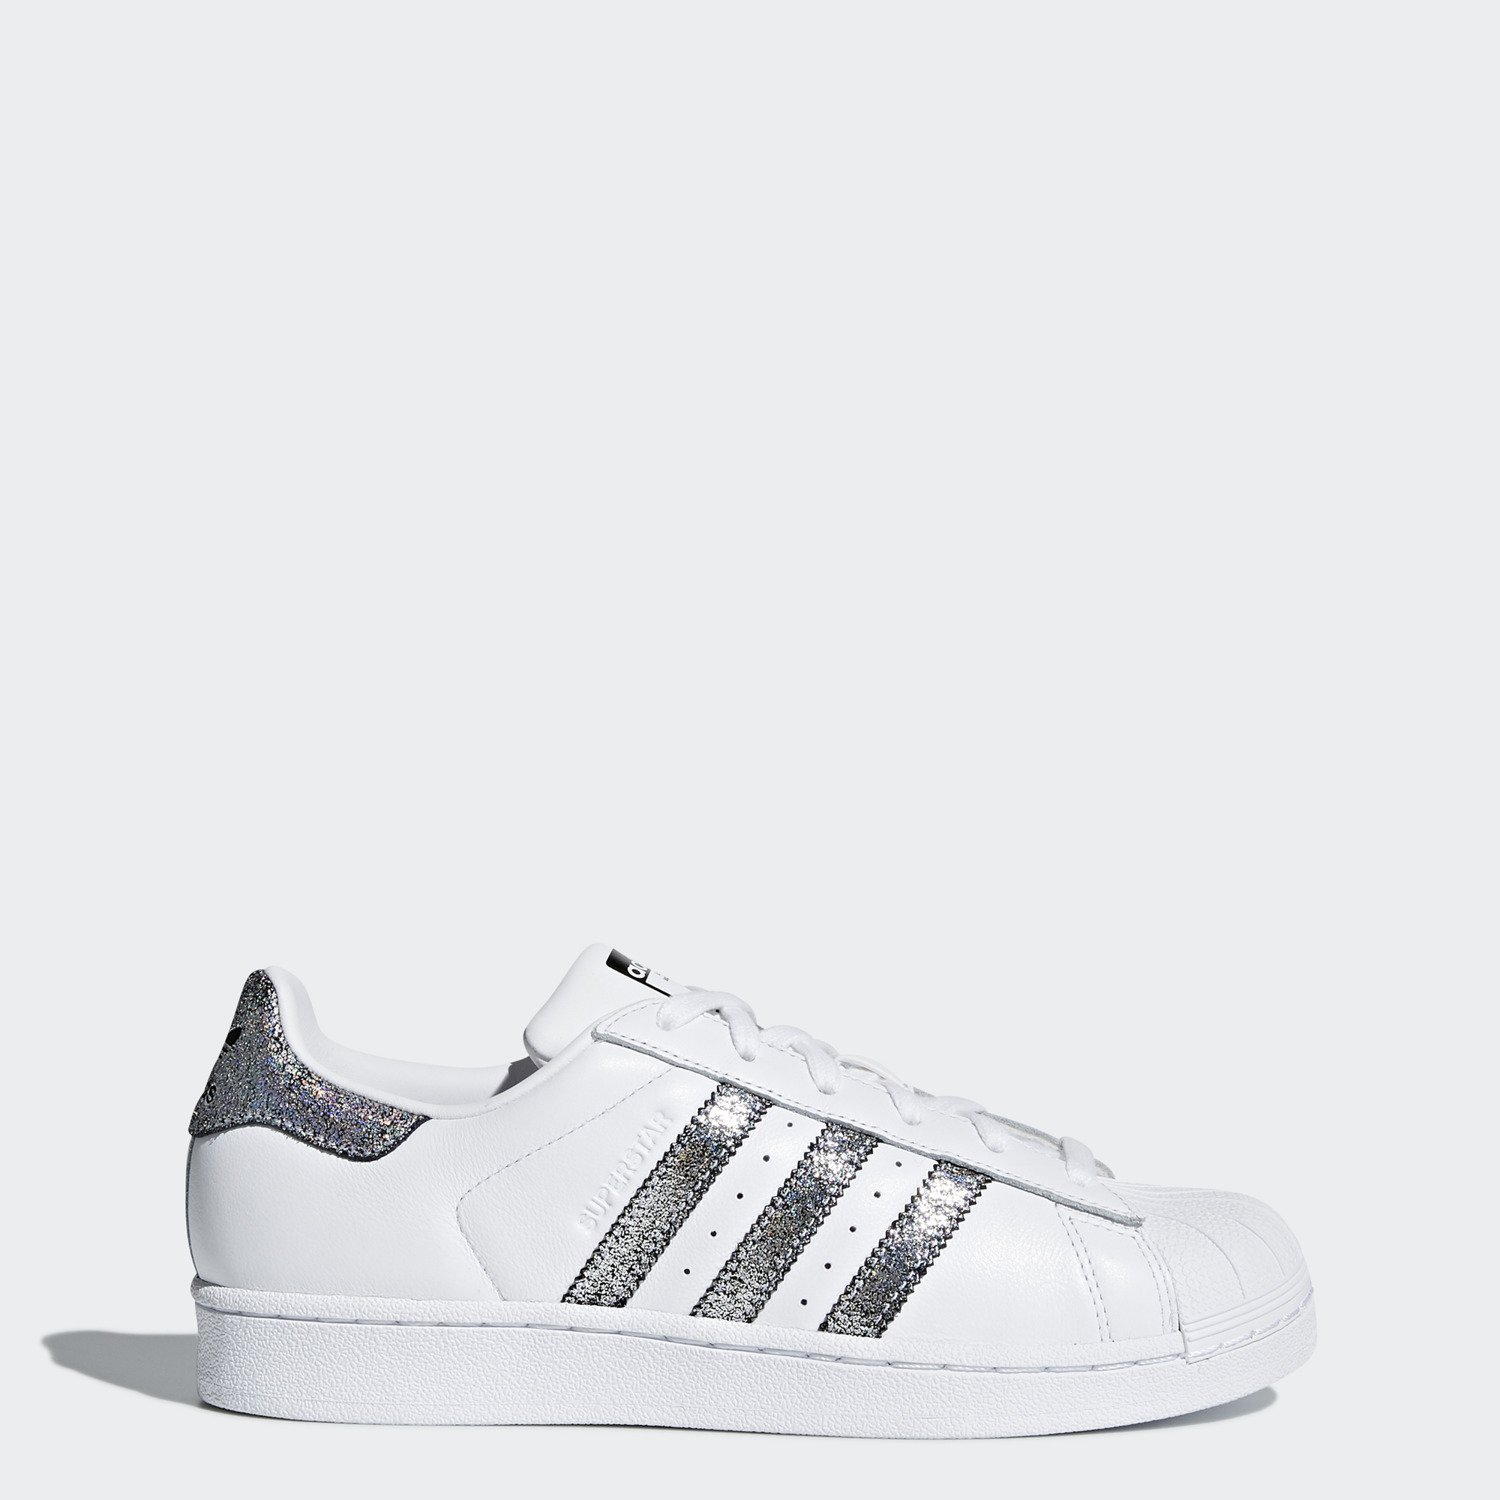 Buty damskie adidas superstar cg5455 sklep for Adidas che cambiano colore